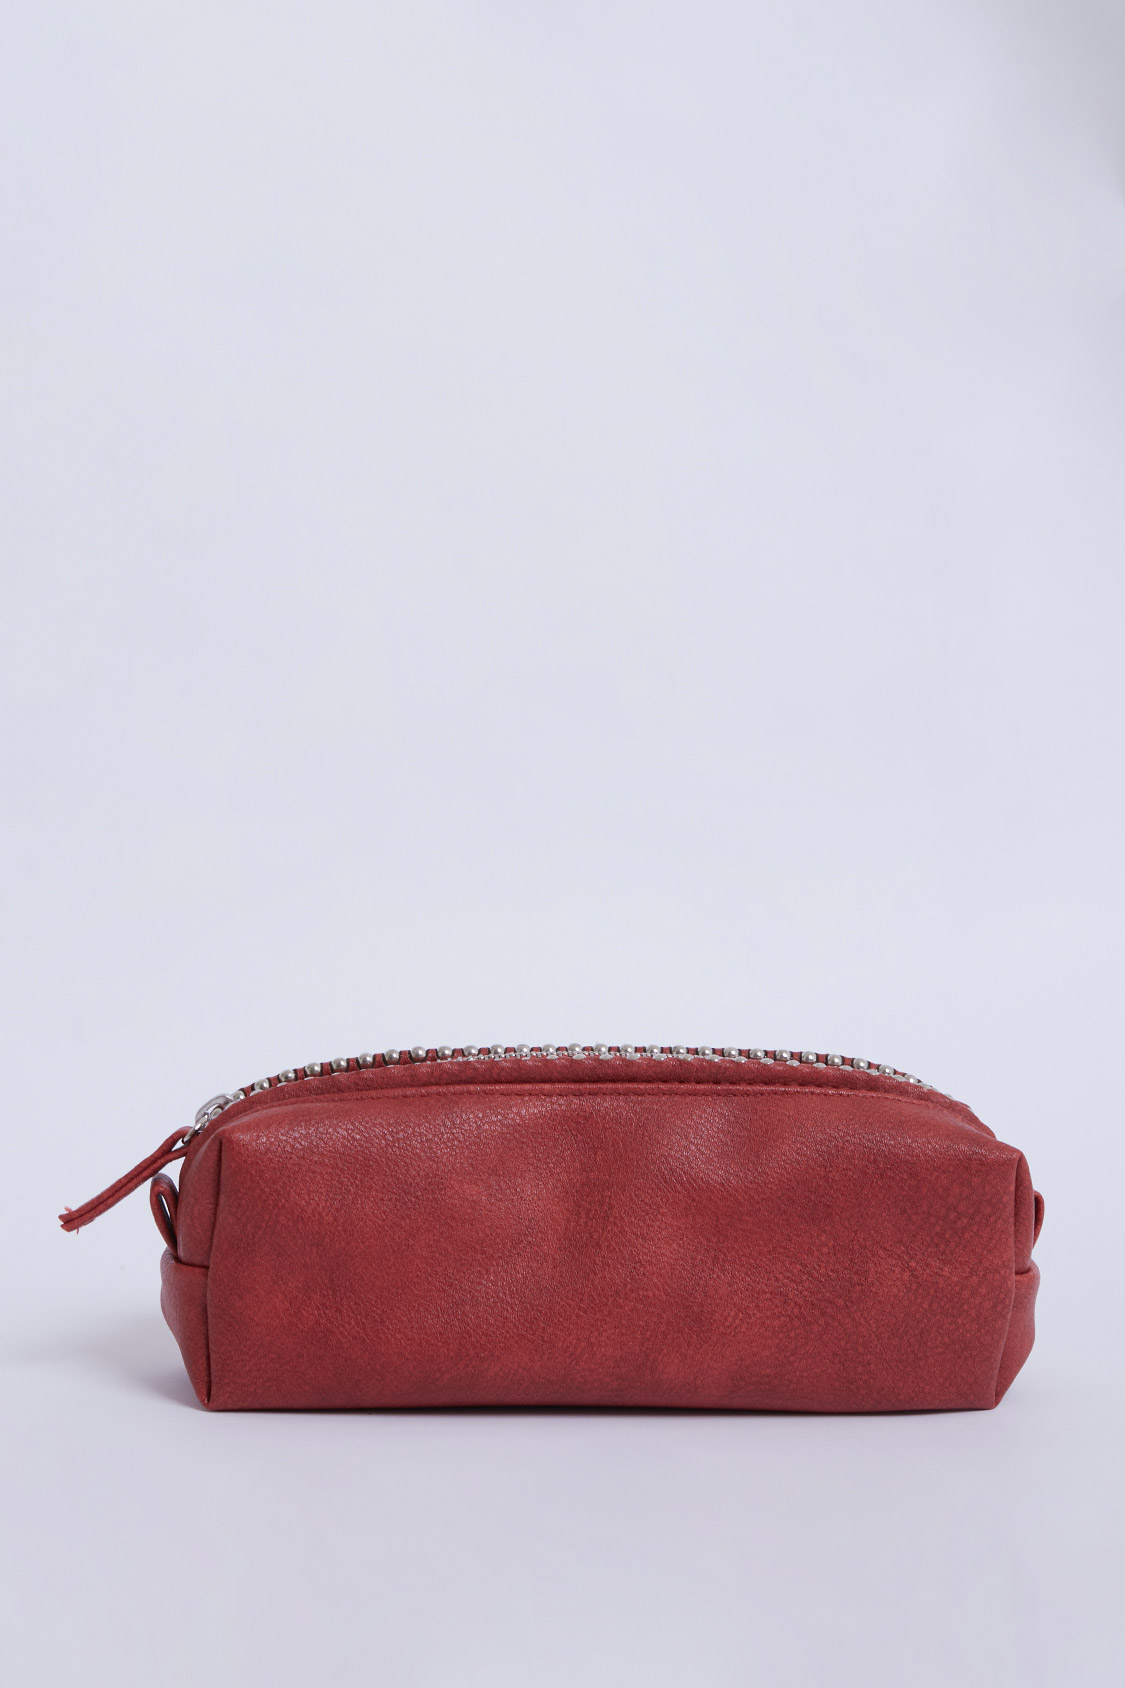 Studded faux leather pencil case